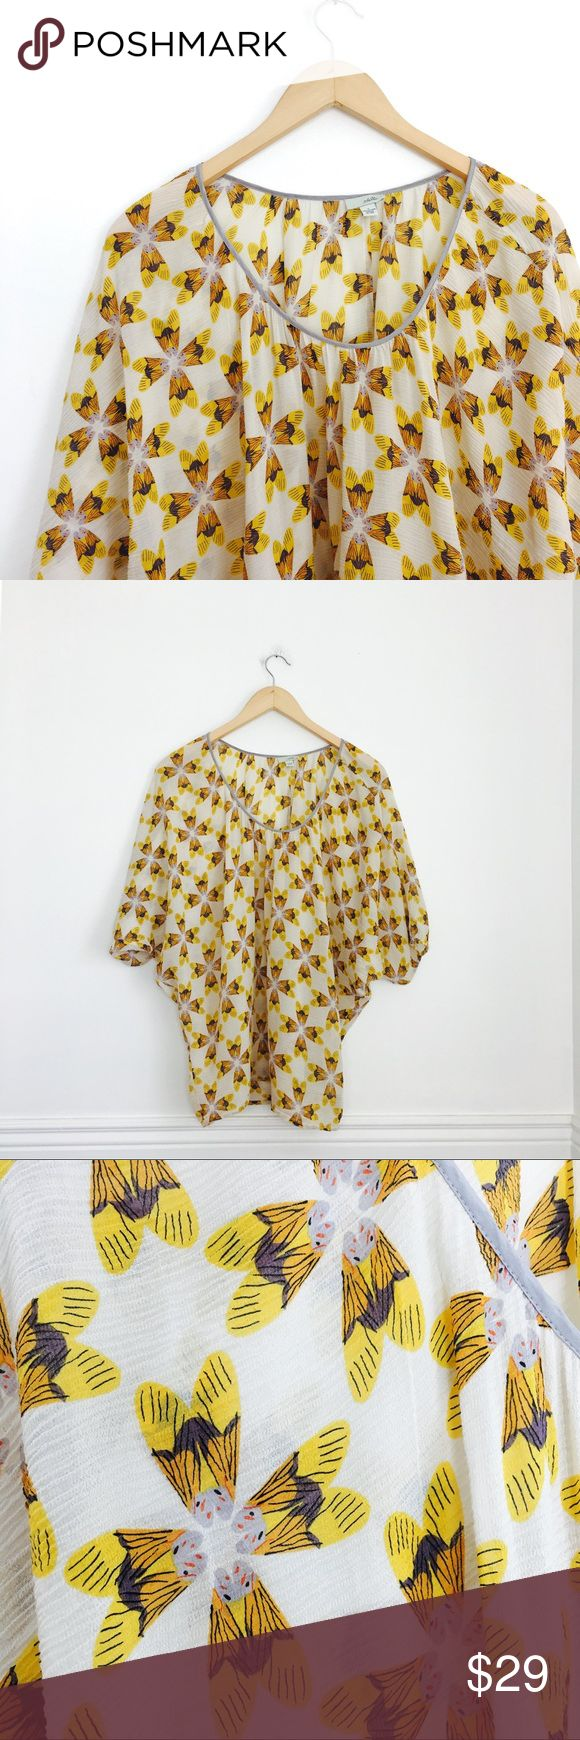 "Anthropologie Odille blouse Odille lightweight semi-sheer batwing blouse with yellow moths print. Silk and cotton. Size S. Chest 29"", length 27"". Last photo show a couple of tiny runs in the fabric. Anthropologie Tops Blouses"